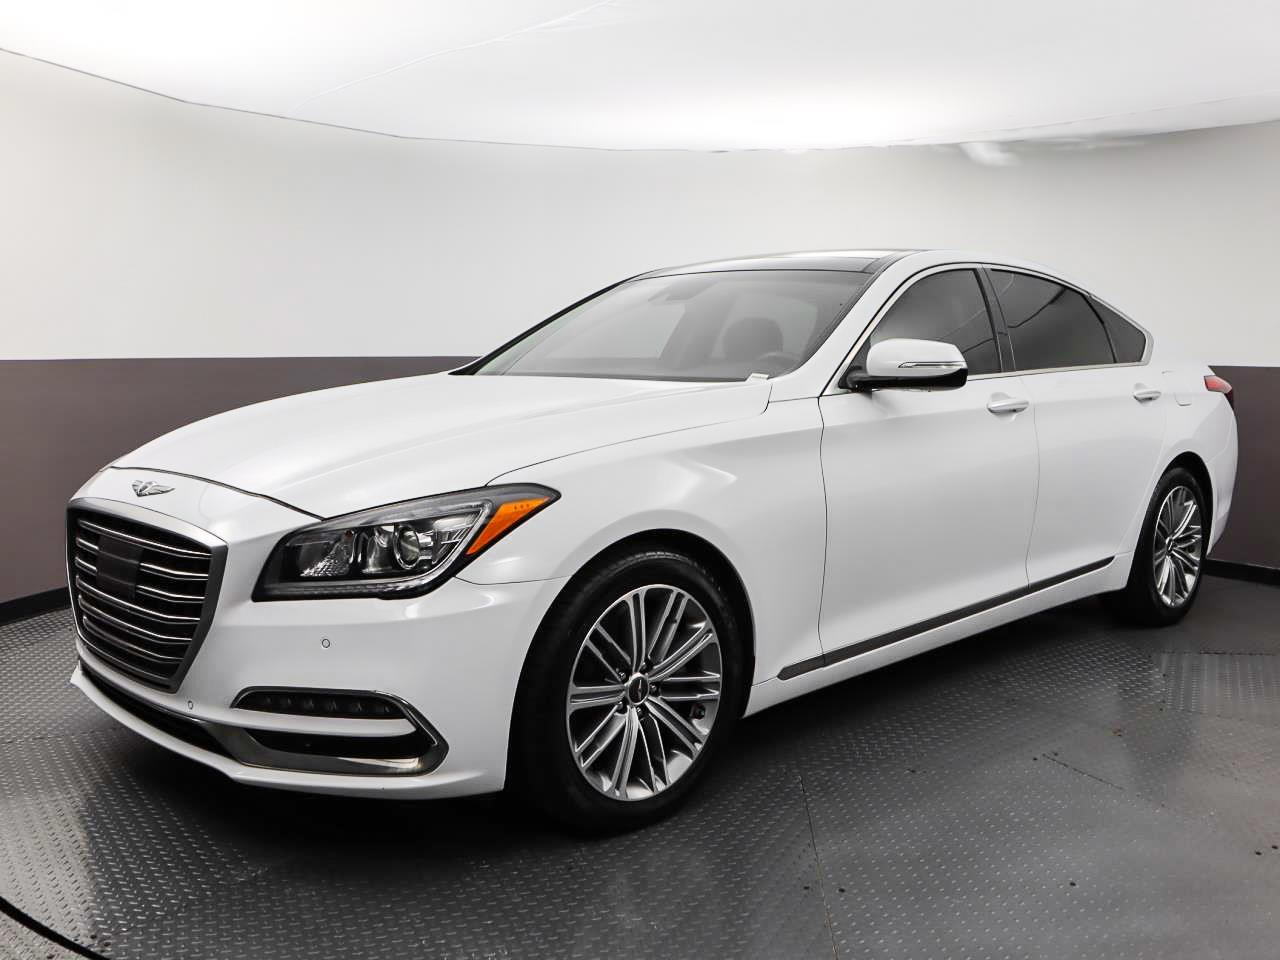 Used GENESIS G80-PREMIUM 2018 WEST PALM 3.8L